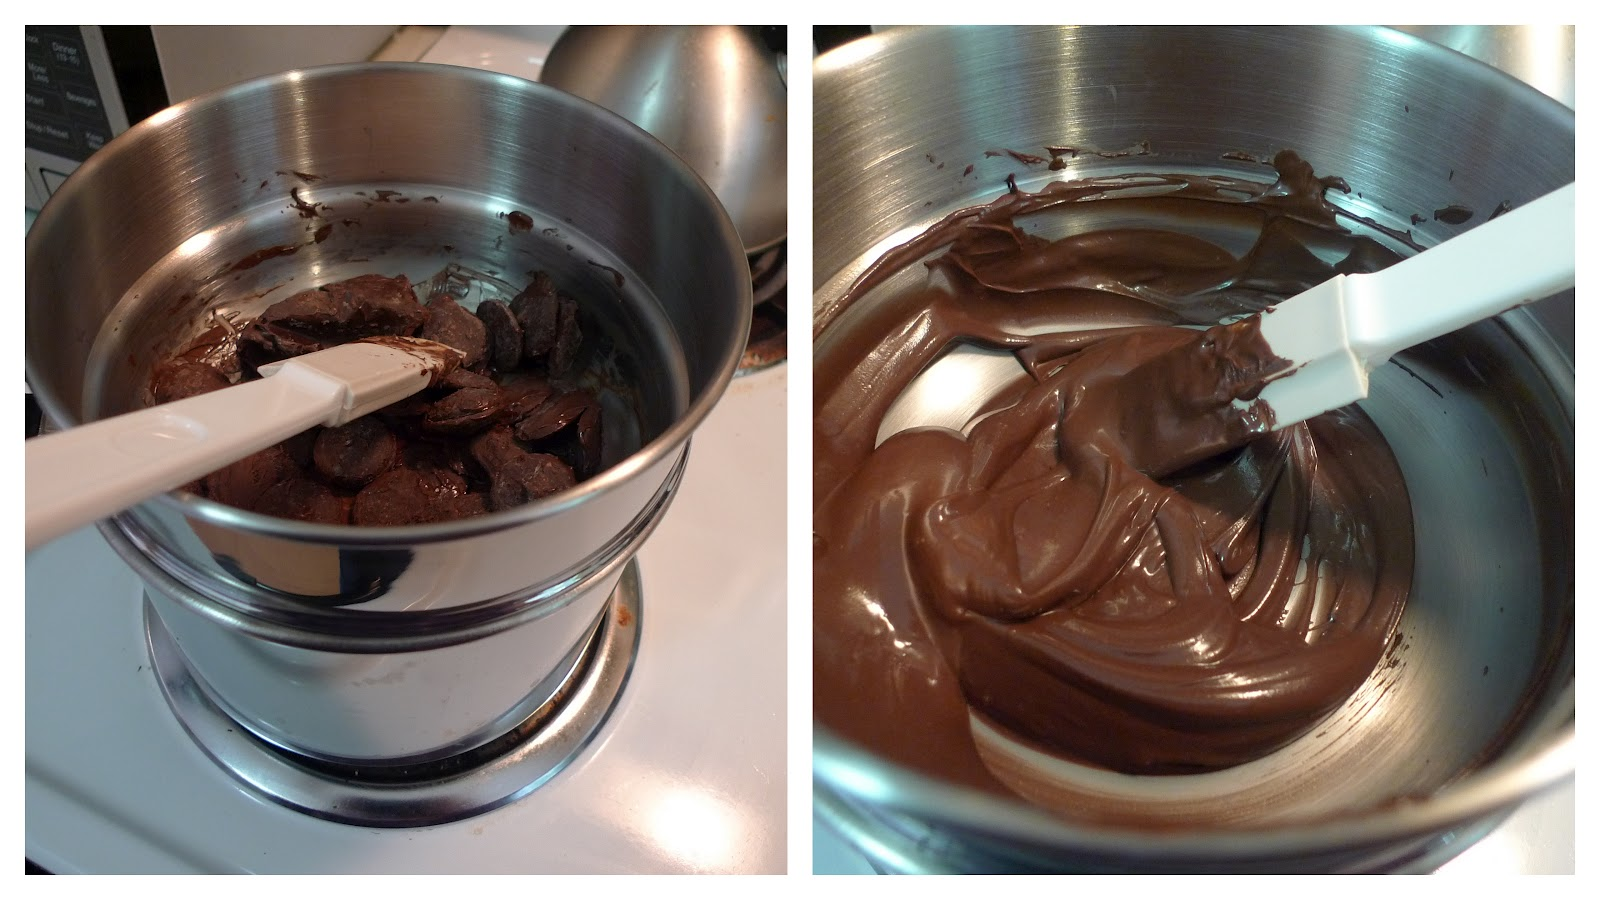 melting chocolate n a double boiler